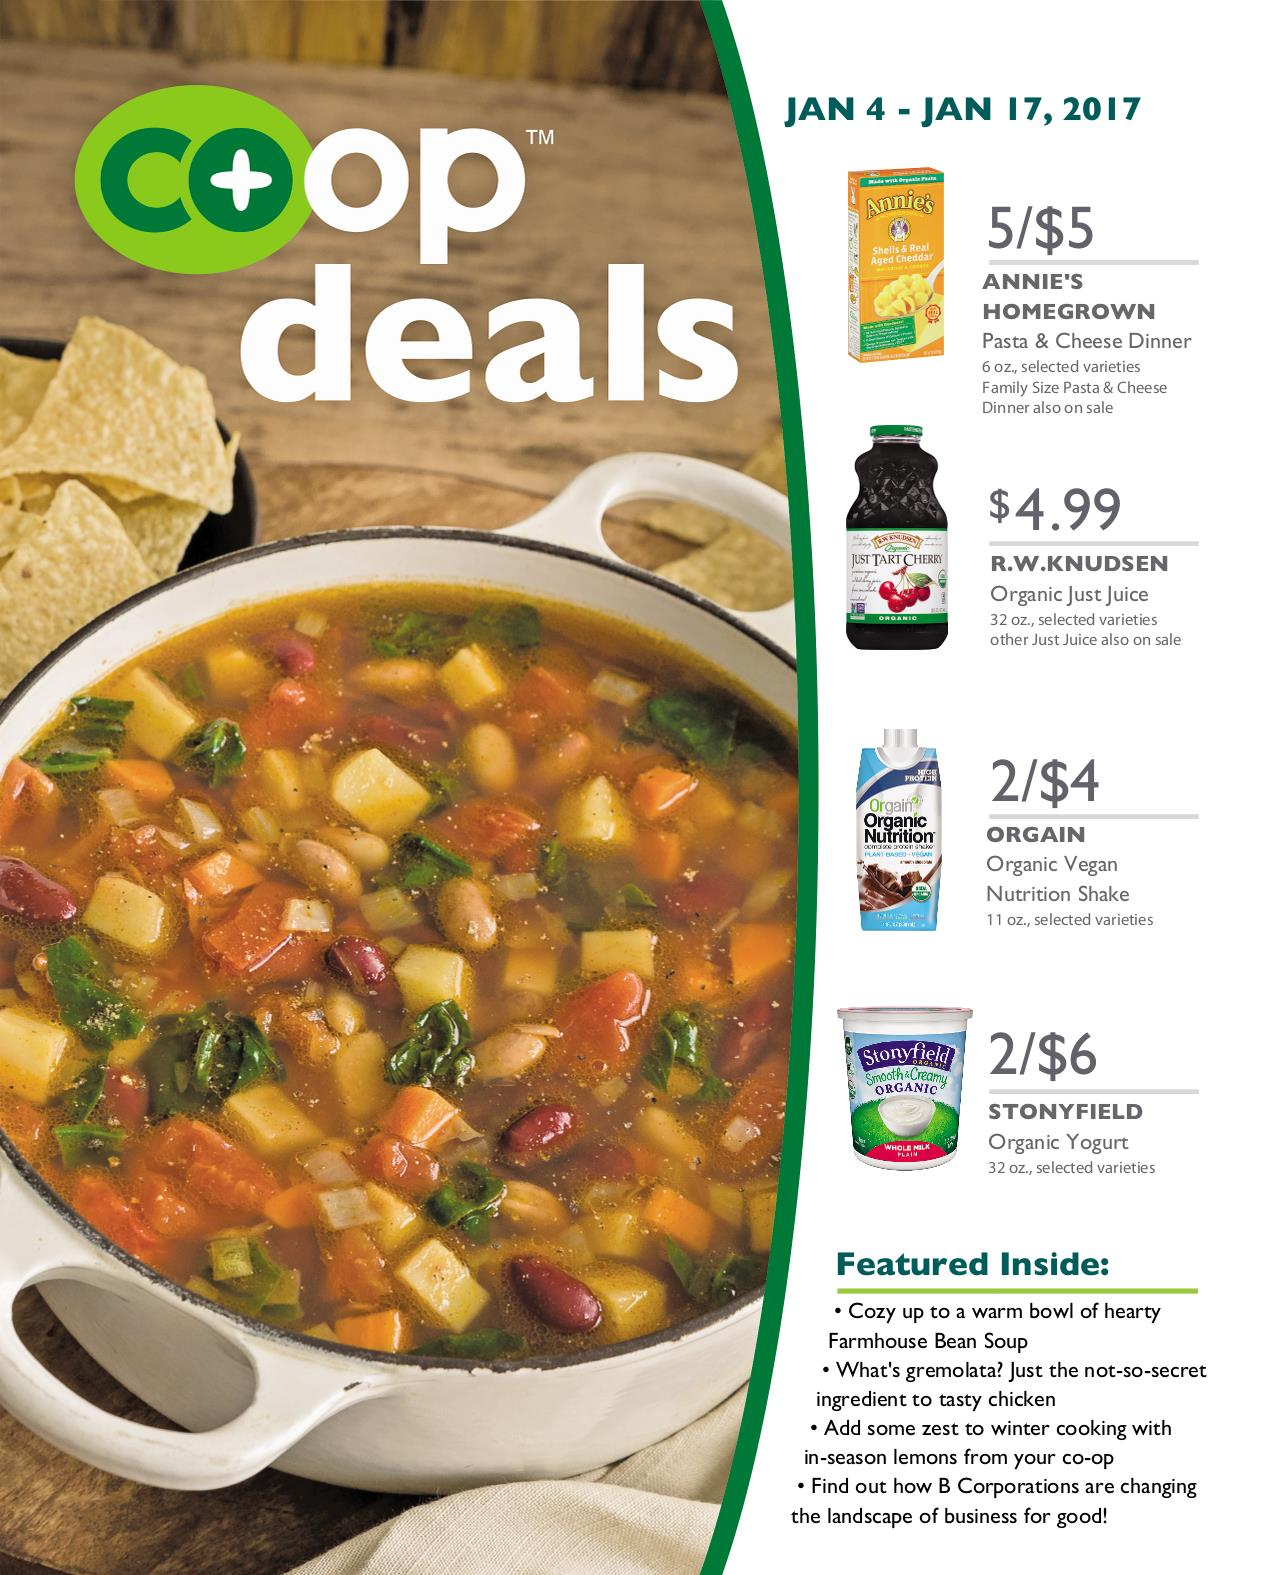 Co+op Deals January 2017 - Flyer A